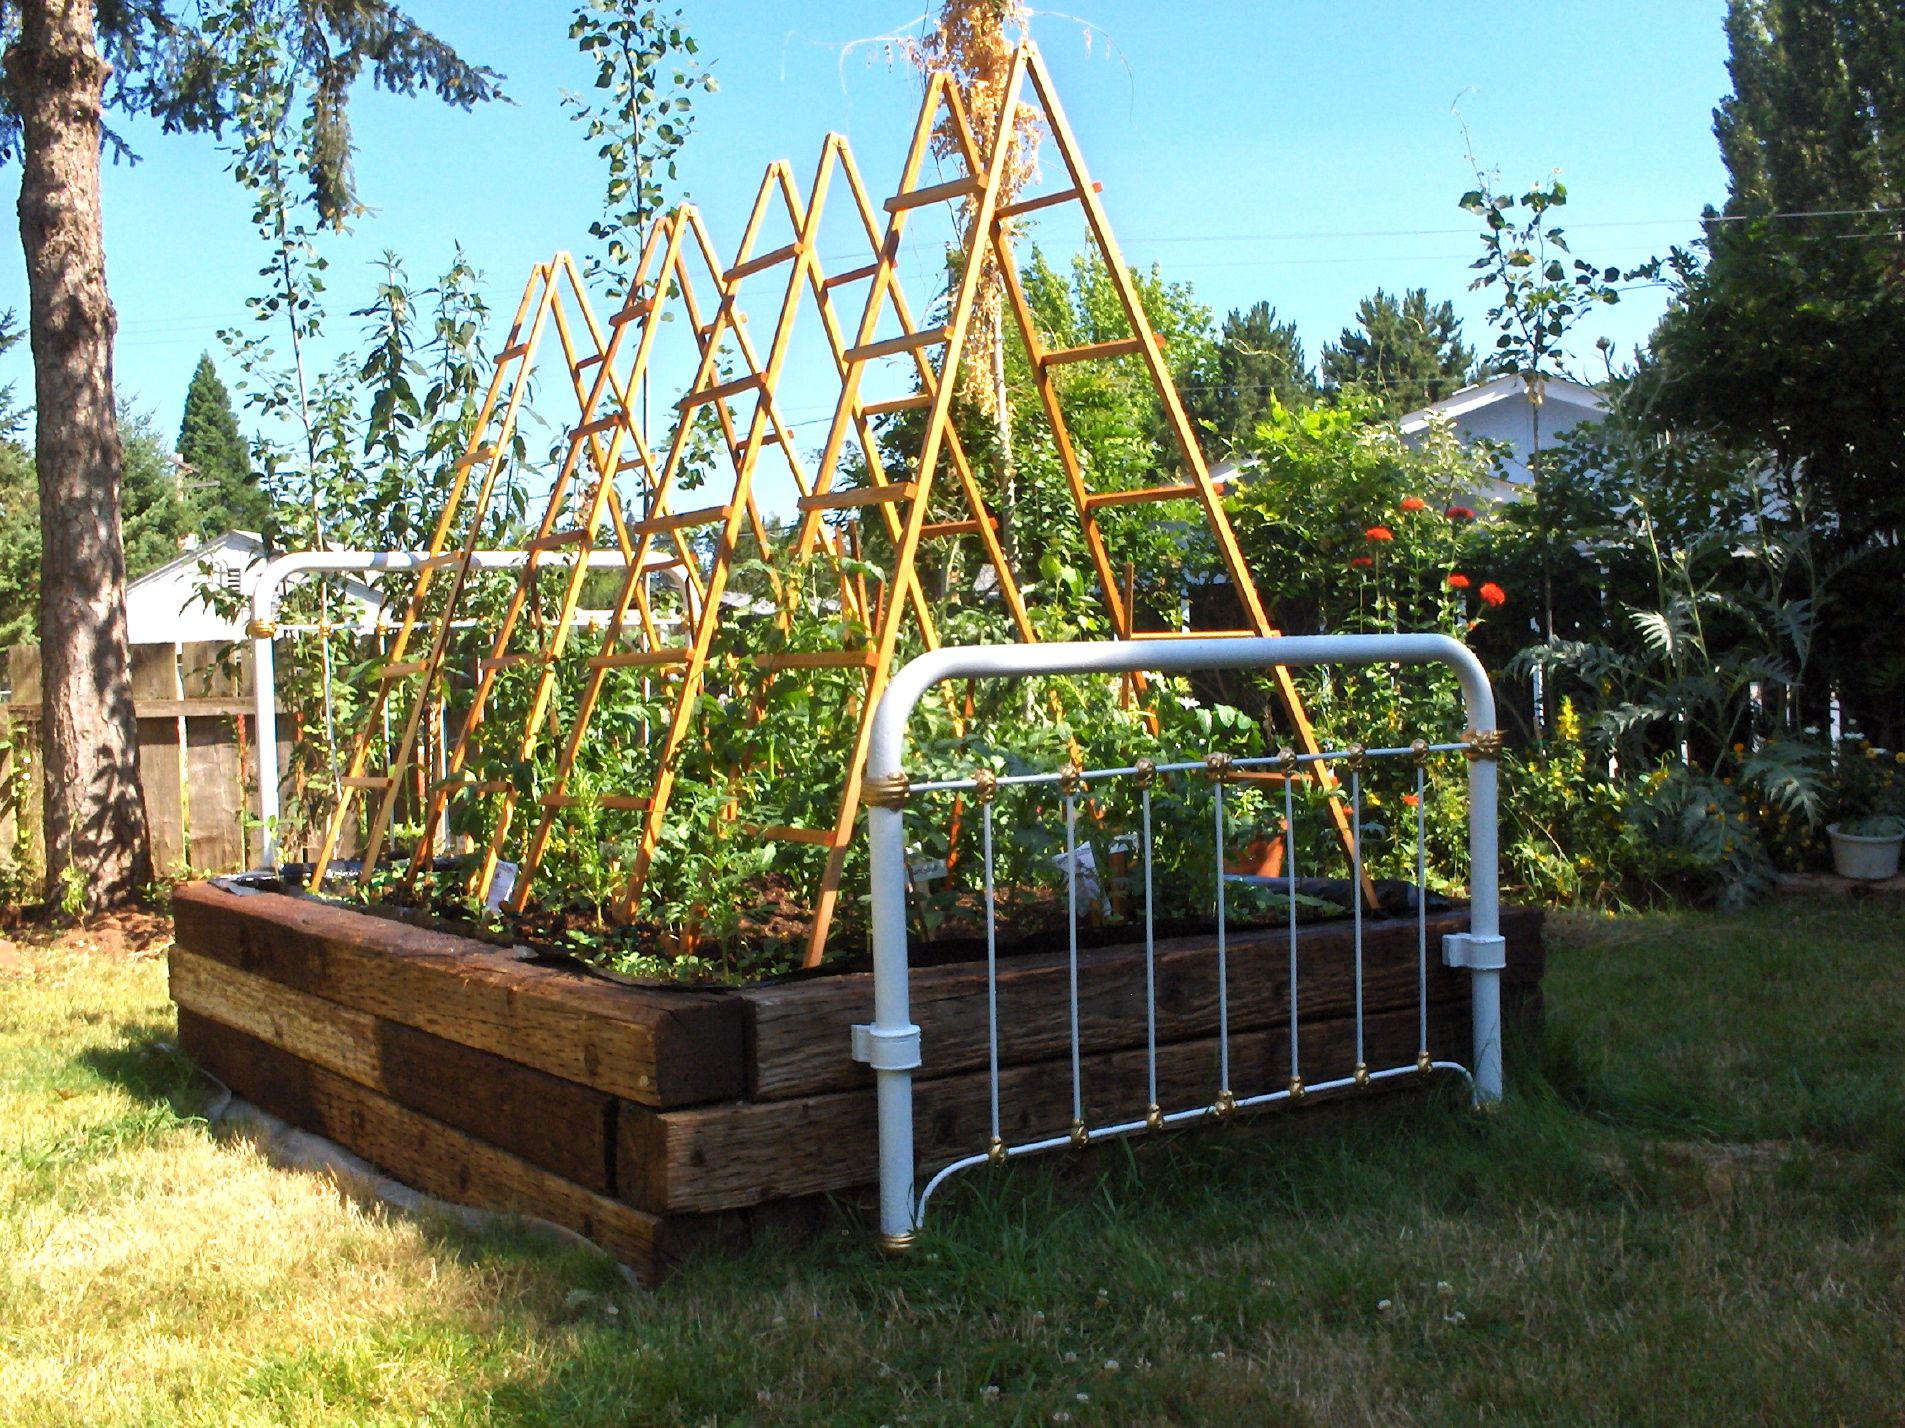 Tomato Trellis Designs Our Latest Trellis Design Is Not Just